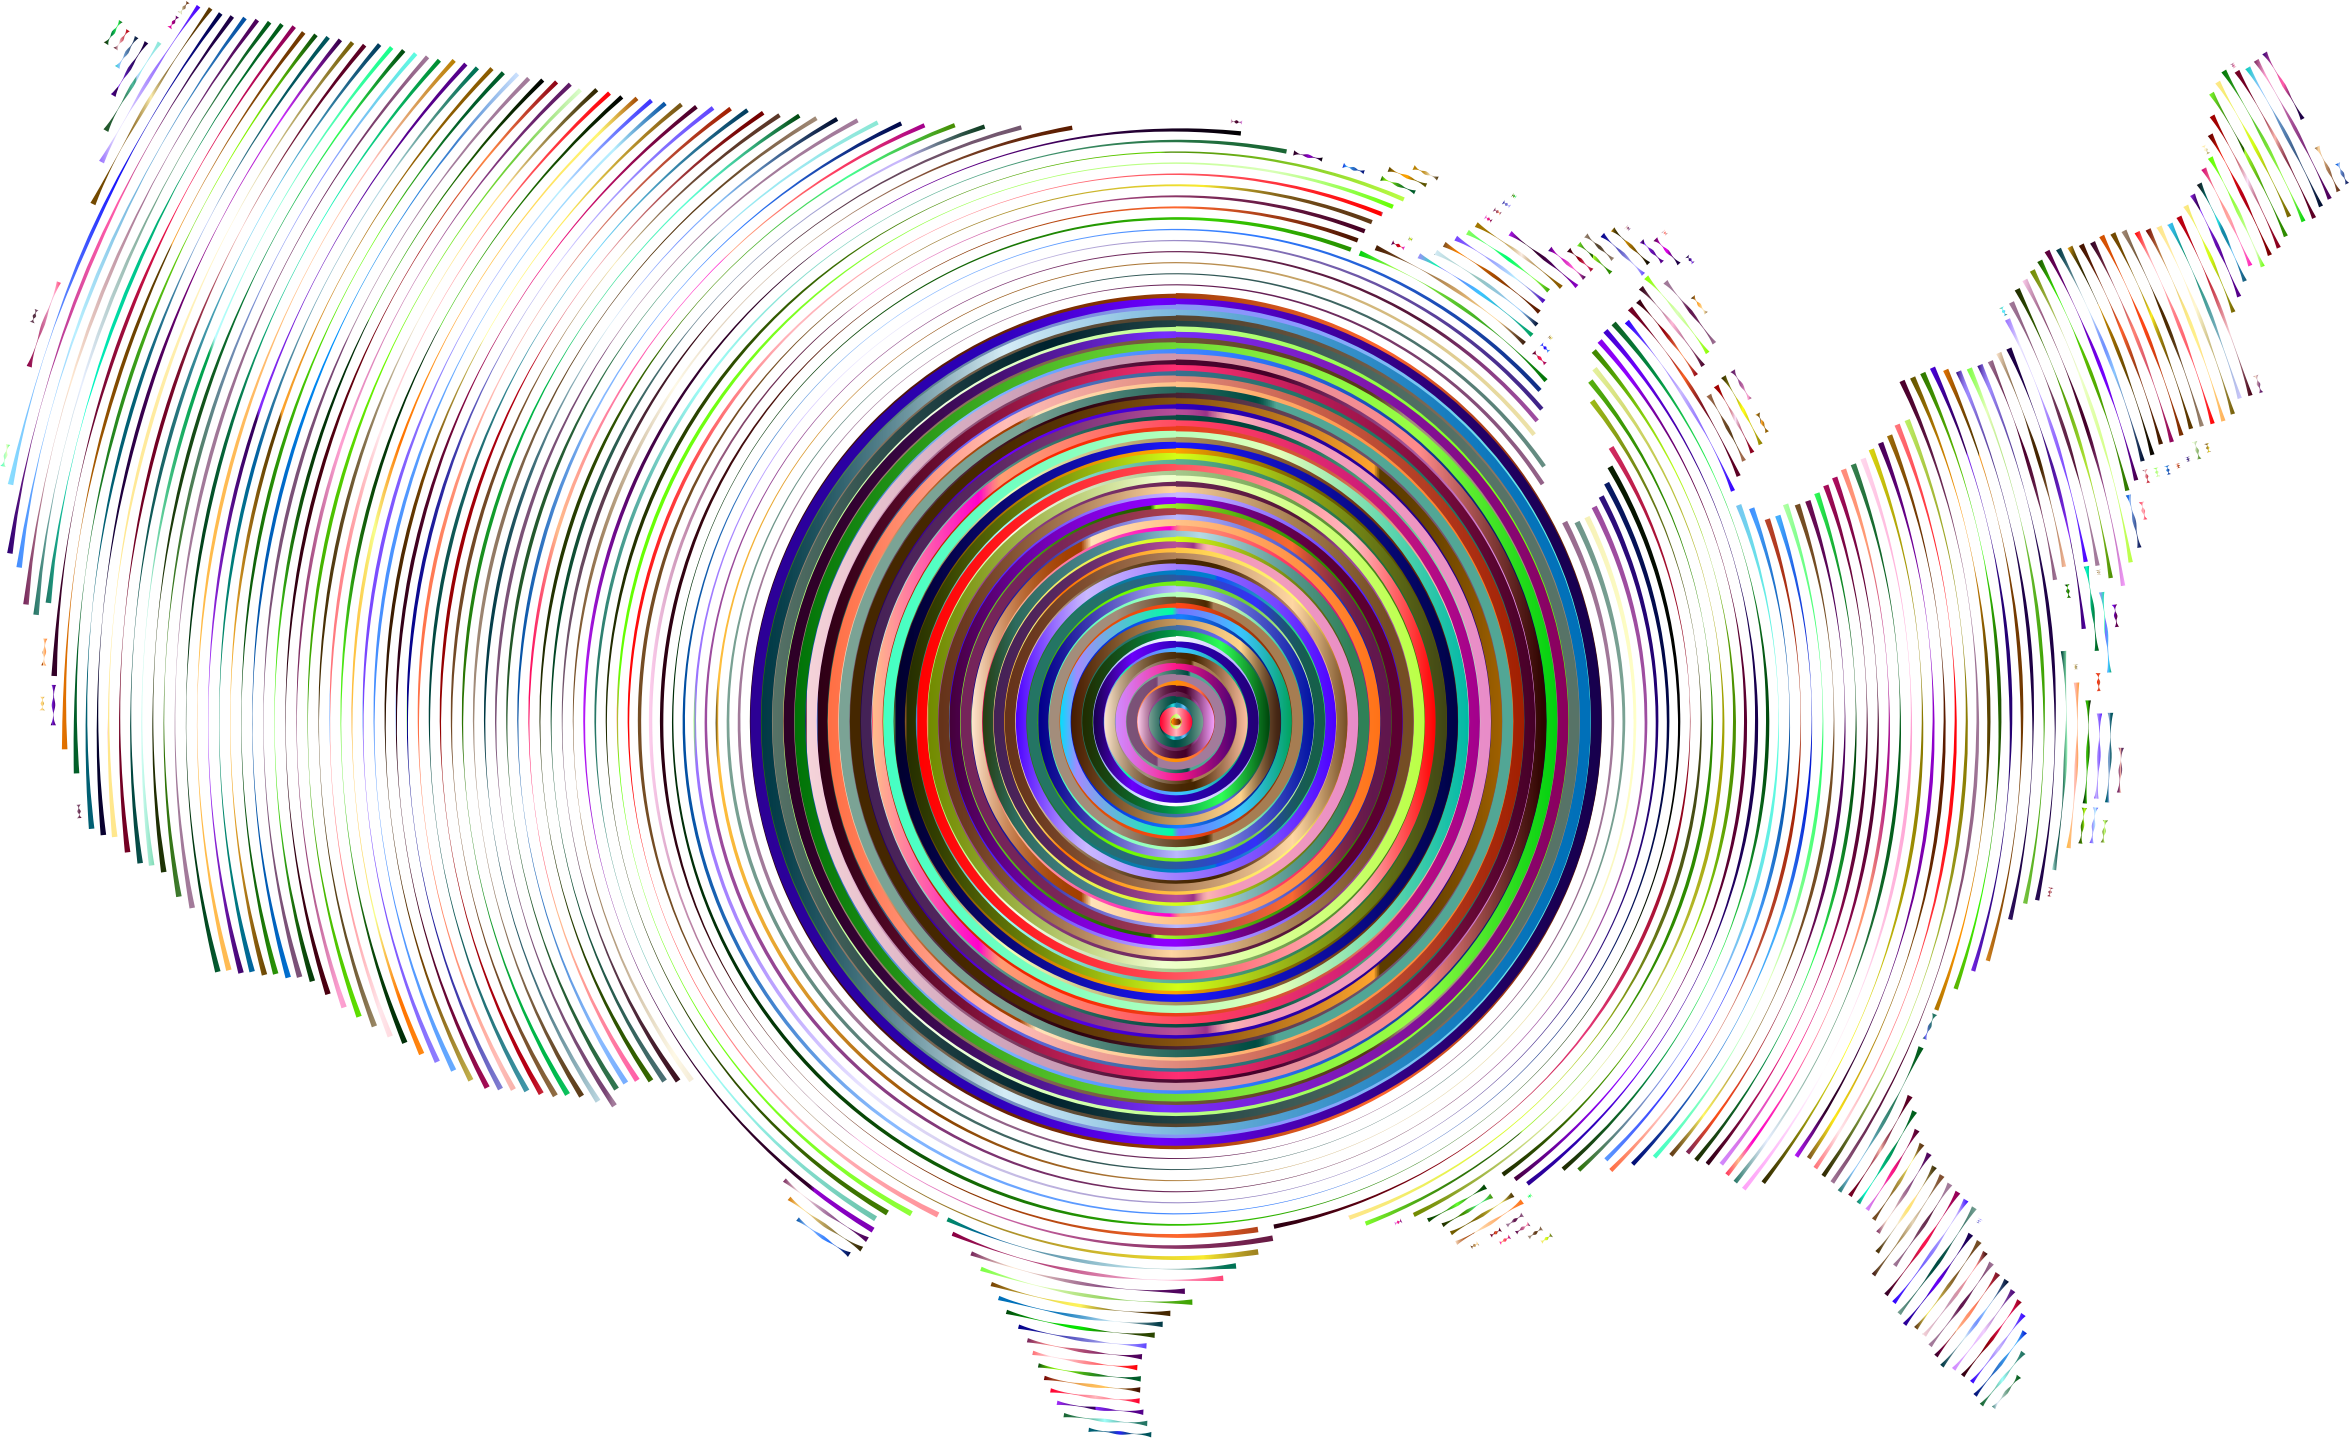 Prismatic United States Concentric Circles 6 by GDJ